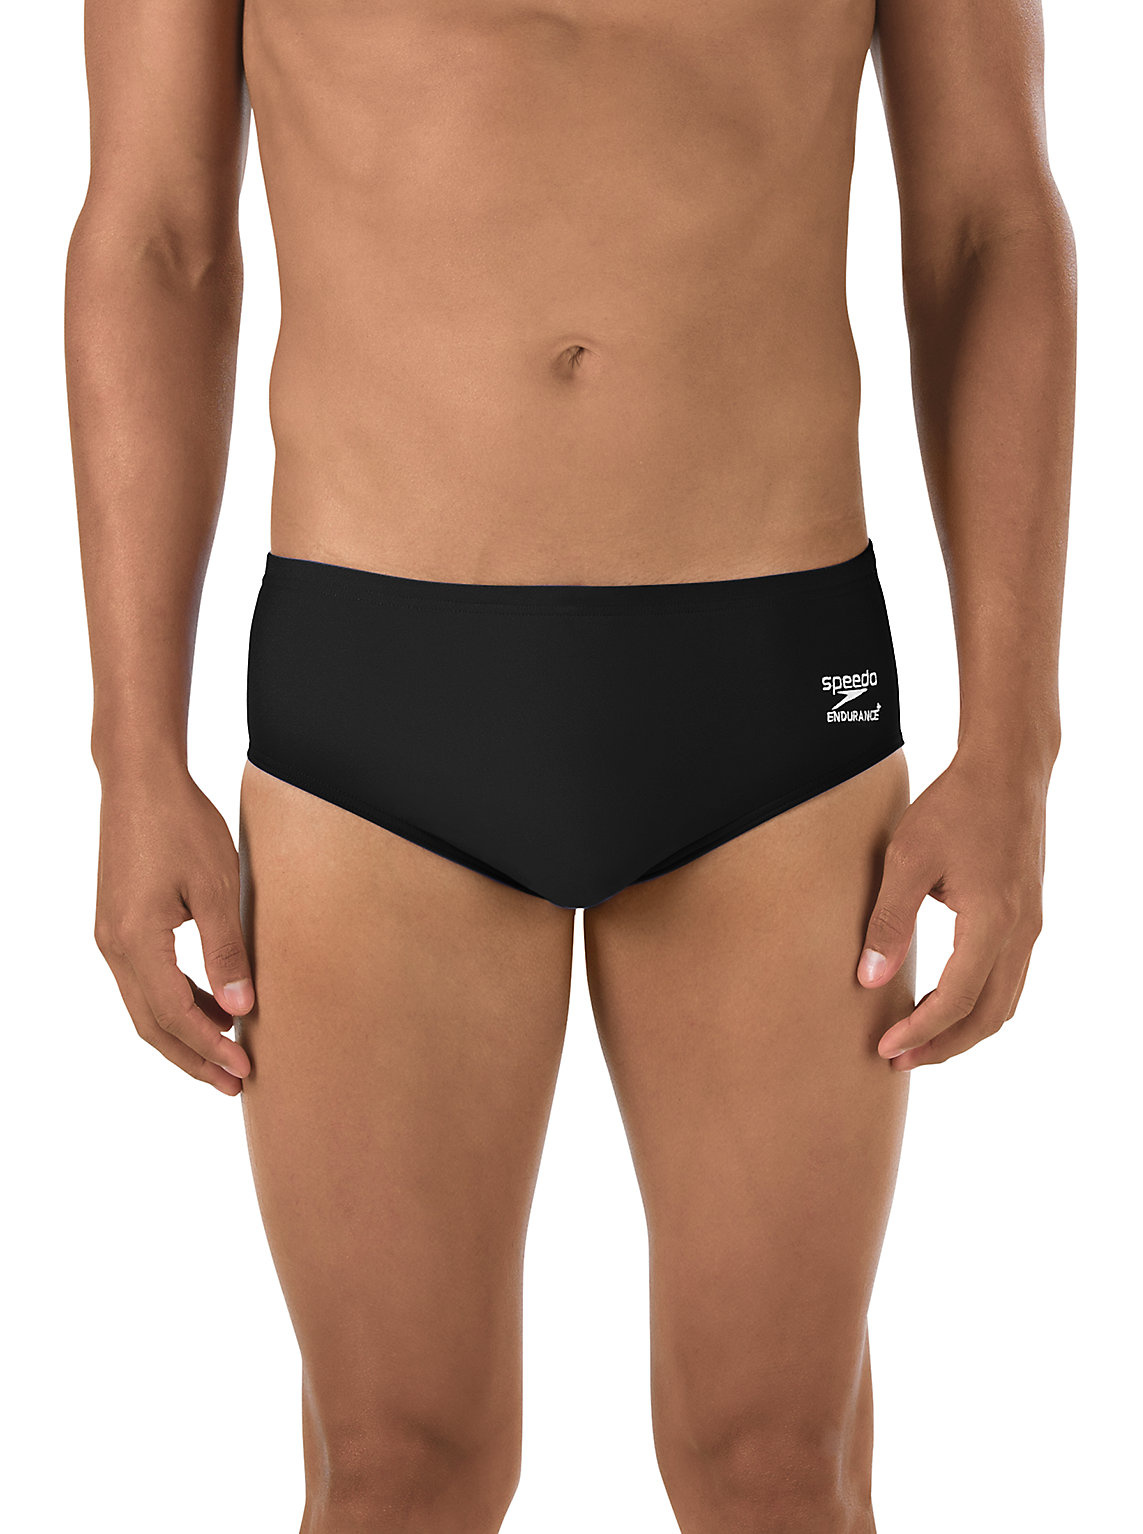 Avery Ranch Redfish Male Brief